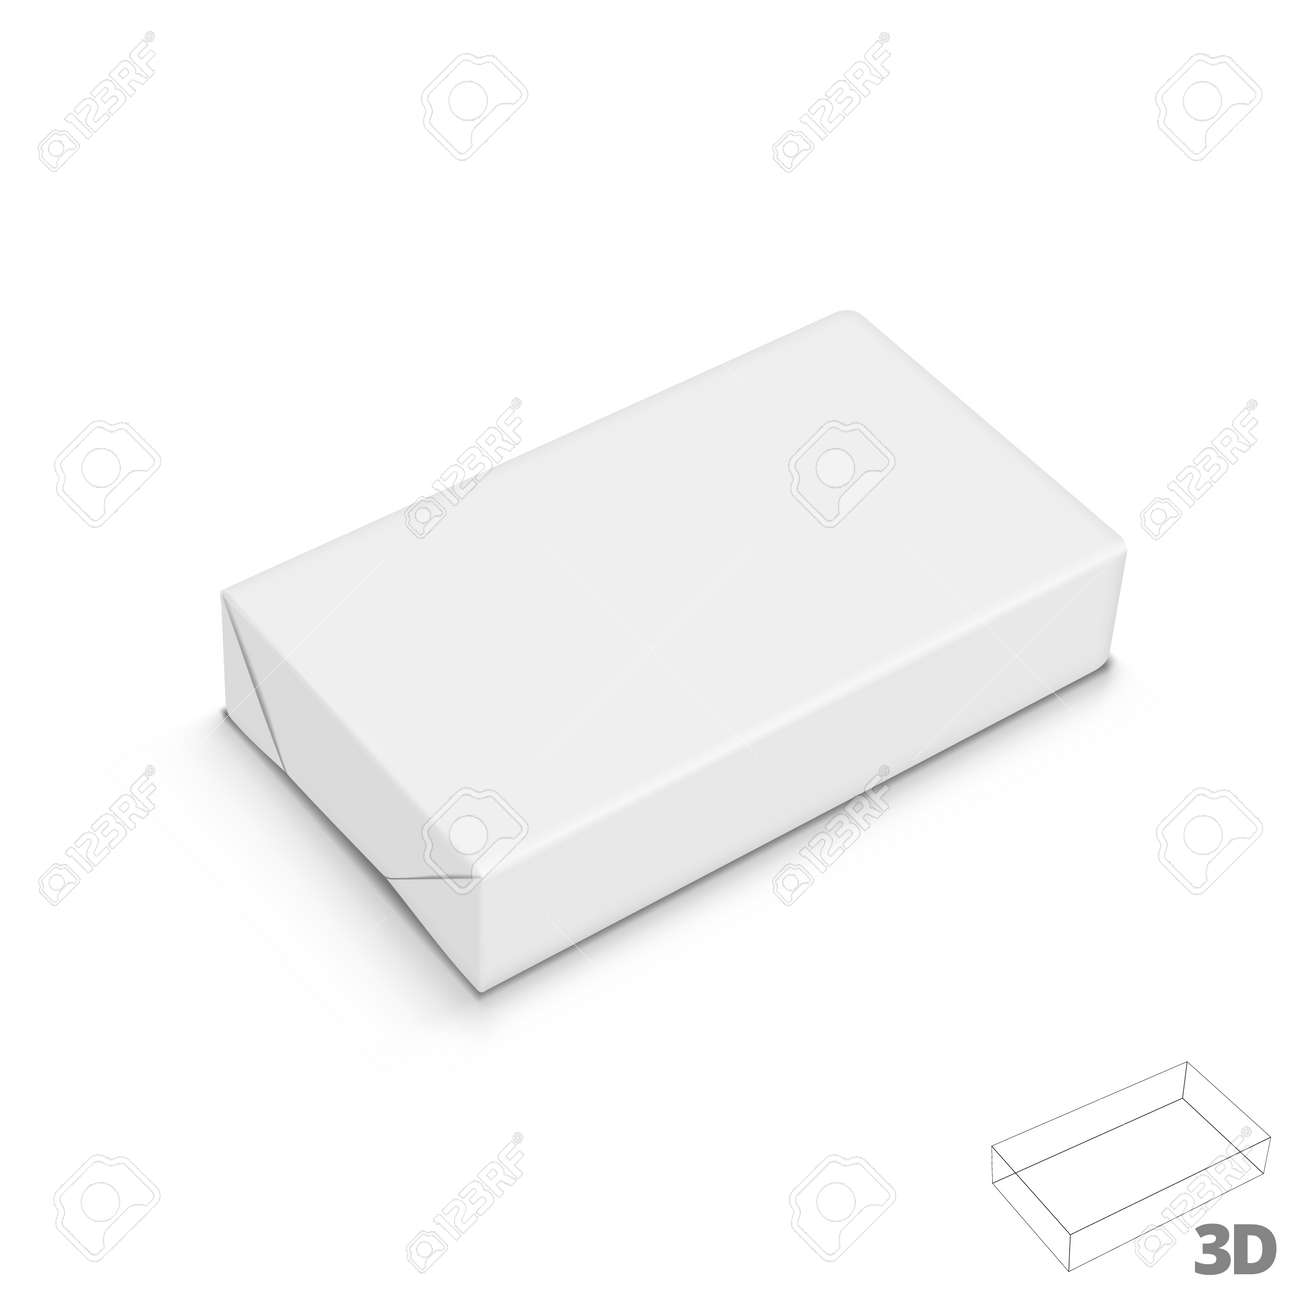 Spread Butter Paper Wrap Box Package On White - 169413632